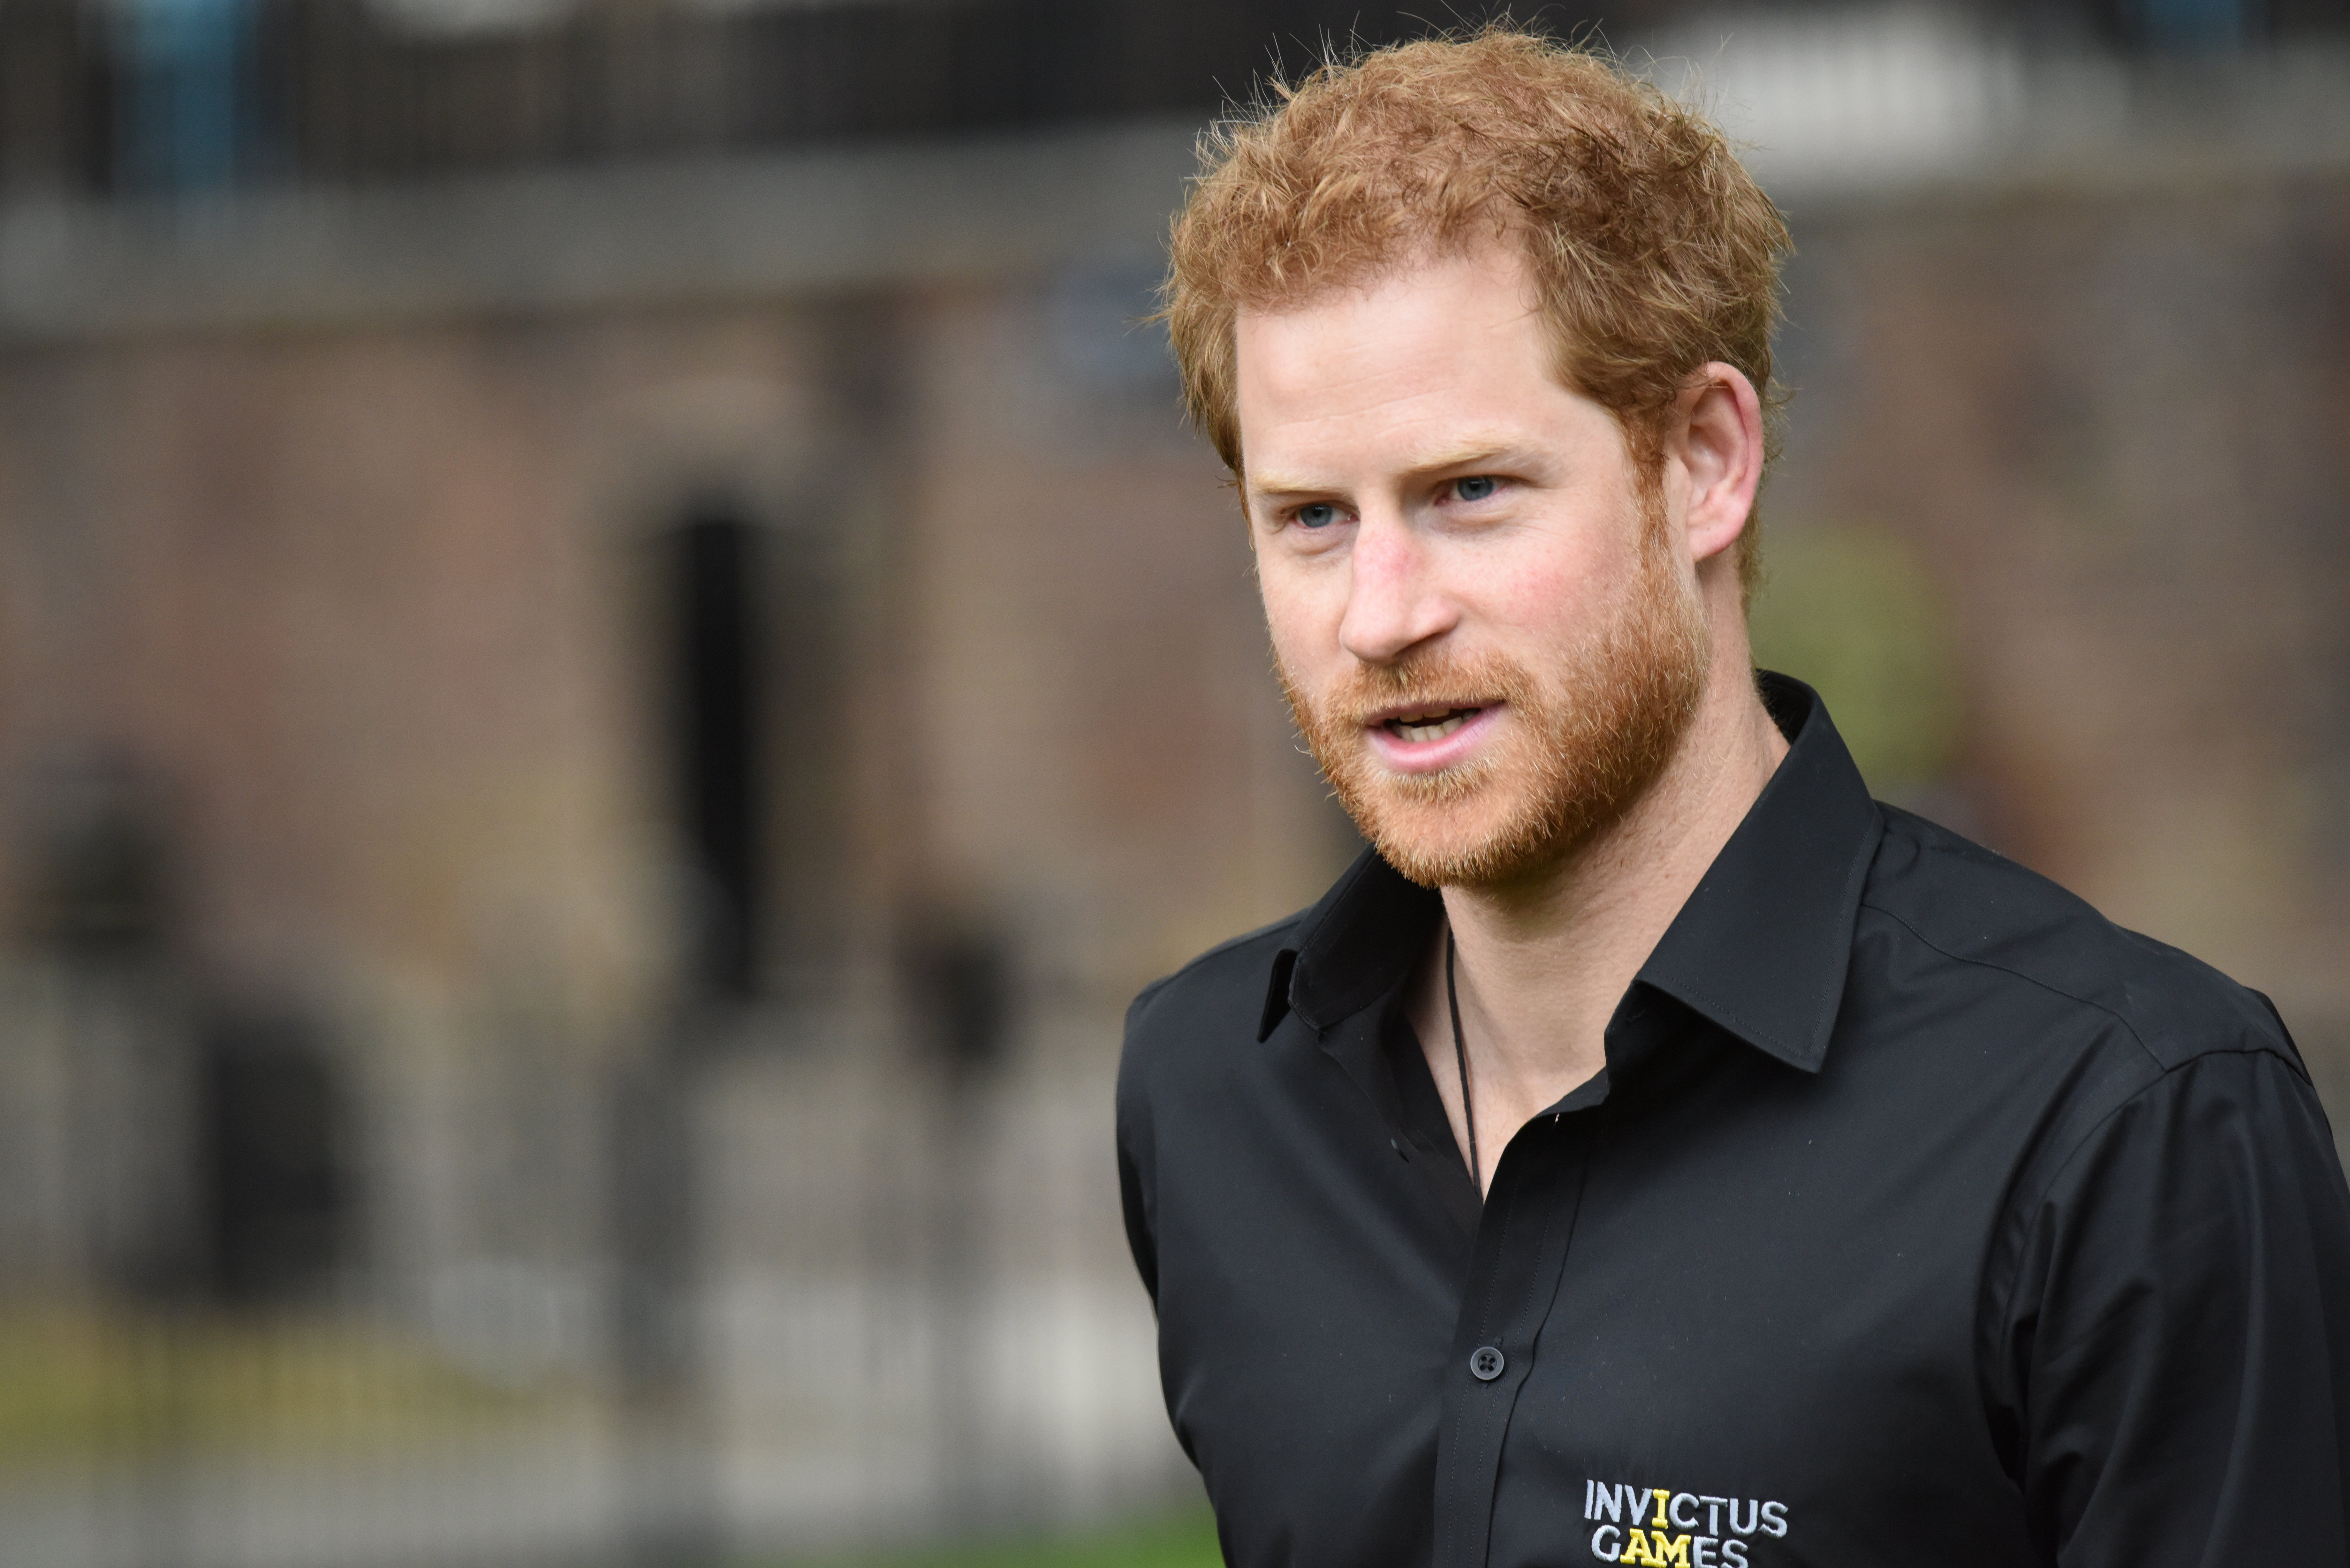 Prince Harry, Patron of the Invictus Games Foundation, attends the launch of the team selected to represent the UK at the Invictus Games Toronto on May 2017 in London, United Kingdom | Photo: Shutterstock